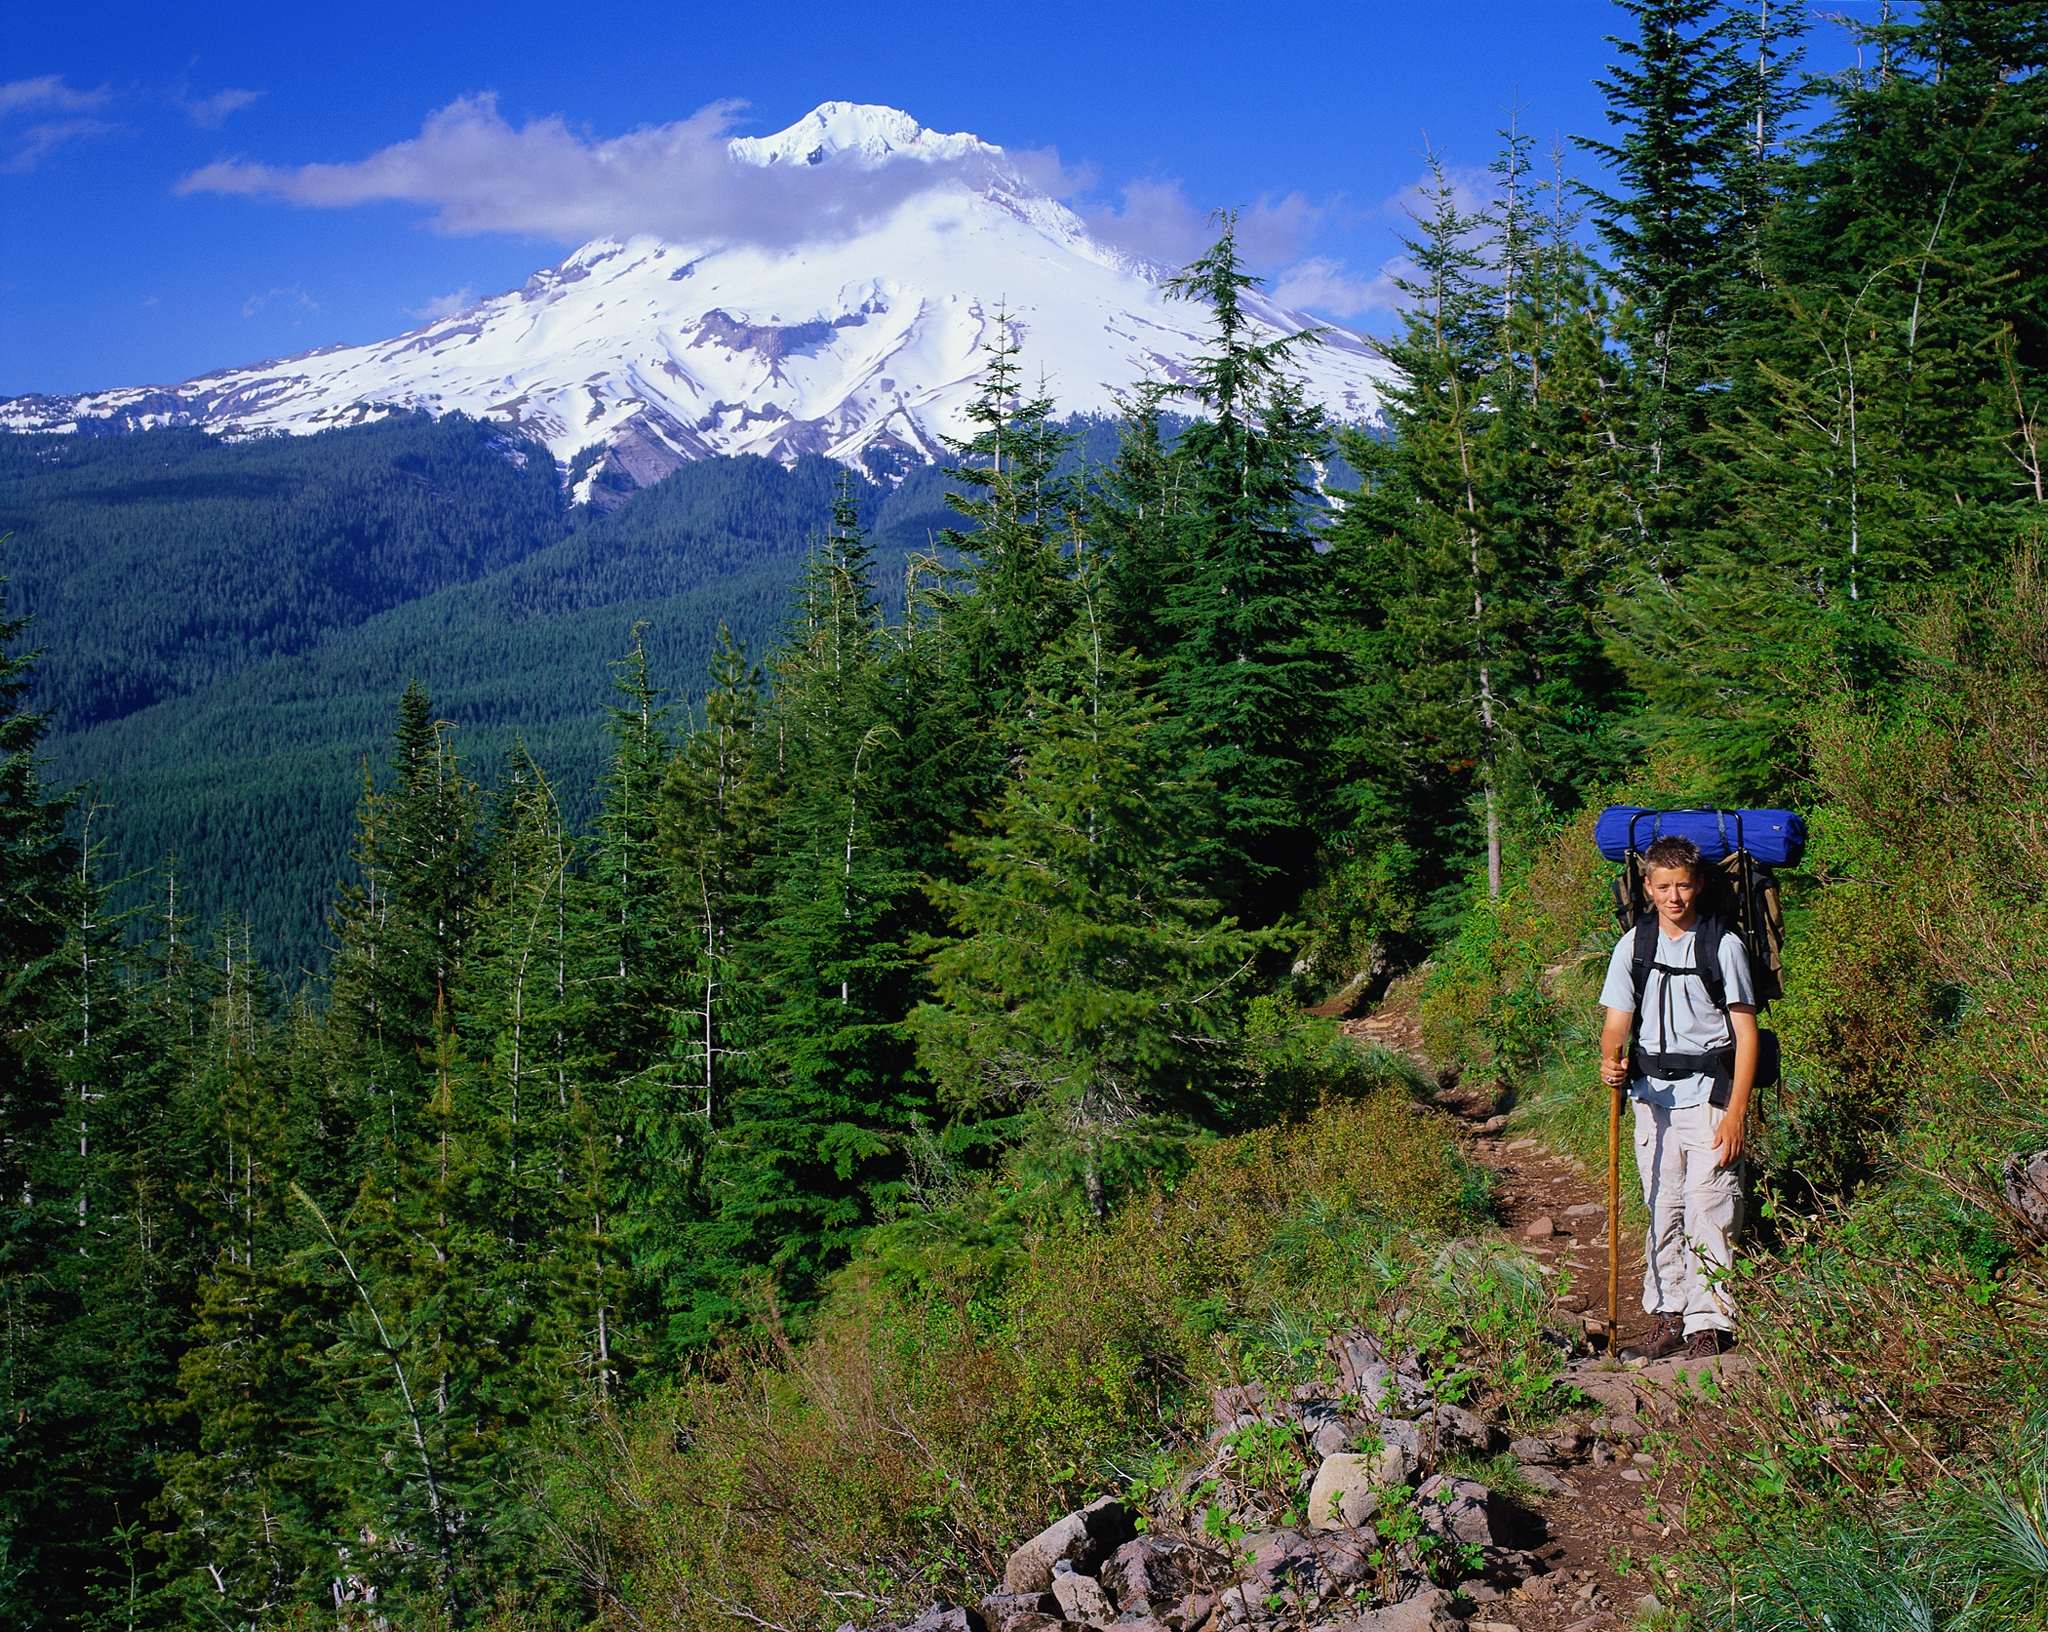 Photo #62735: Hiking in Mt. Hood National Forest | America's Byways